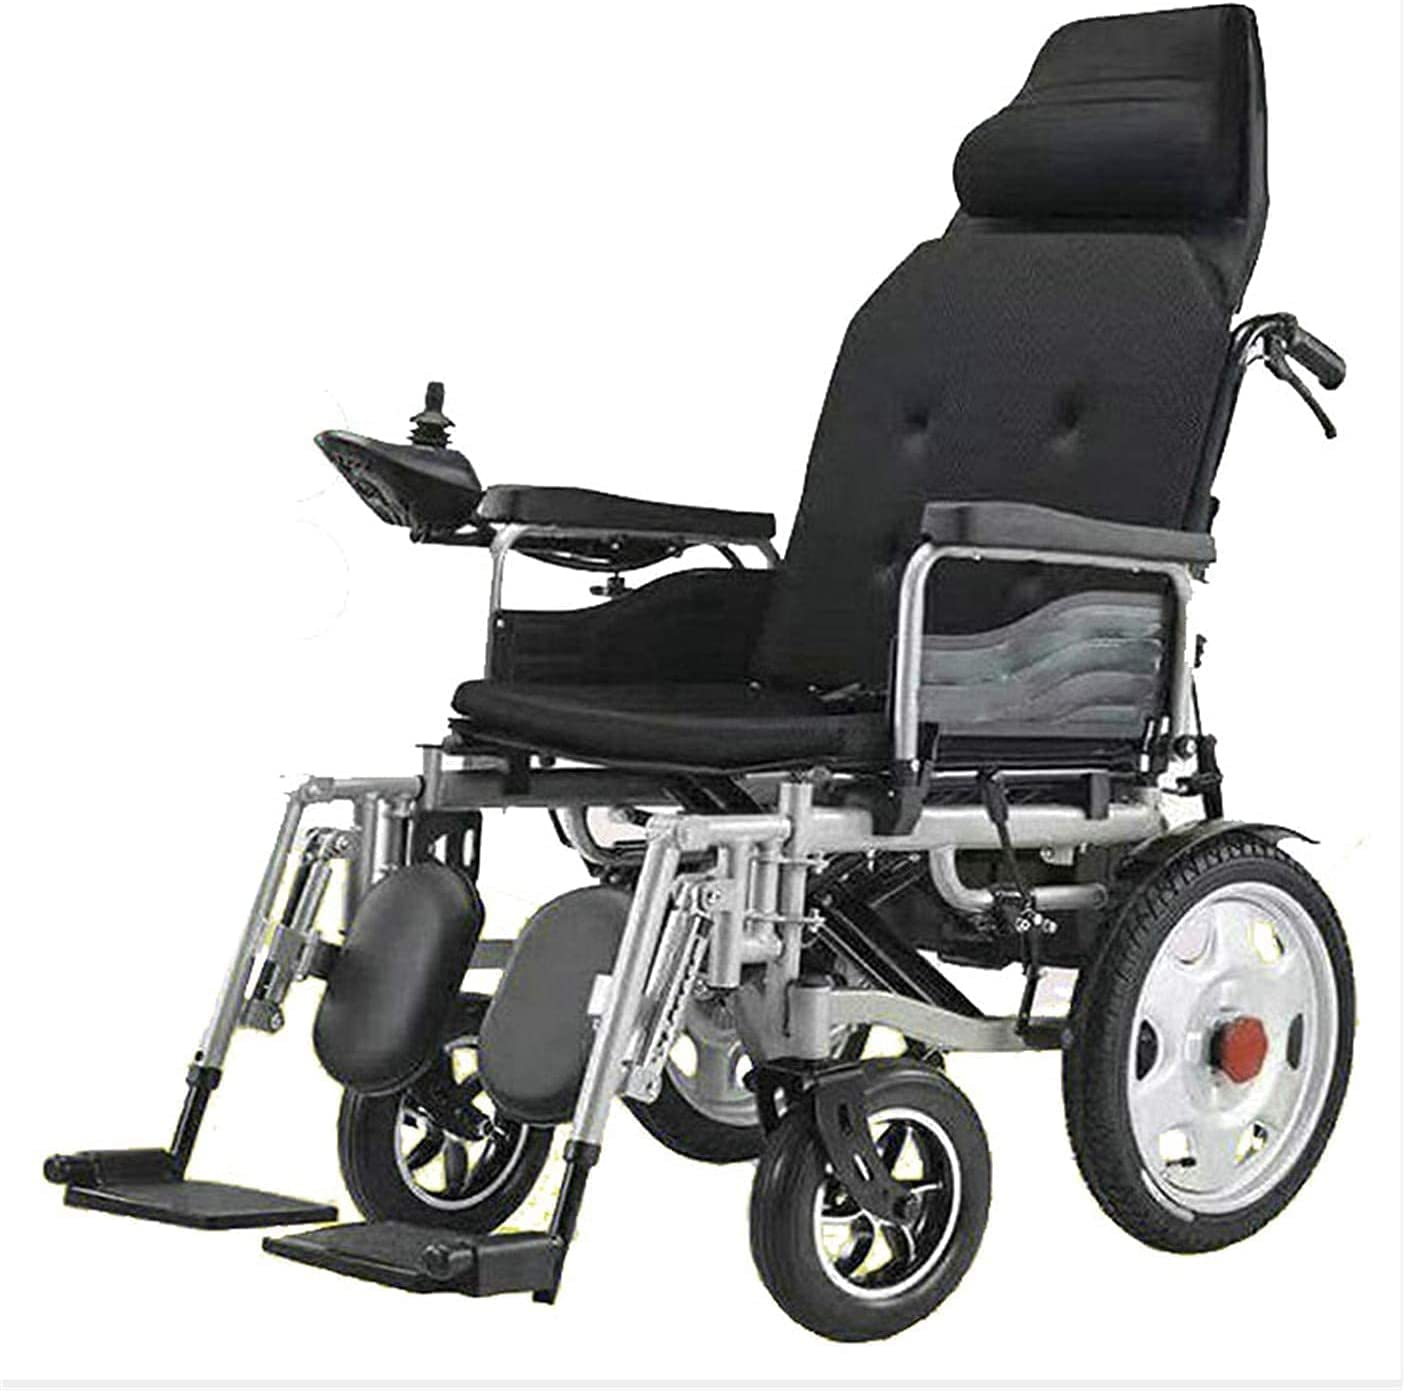 Electric Max 79% OFF Wheelchair with Headrest Limited time sale Lightweight Foldable Intellige